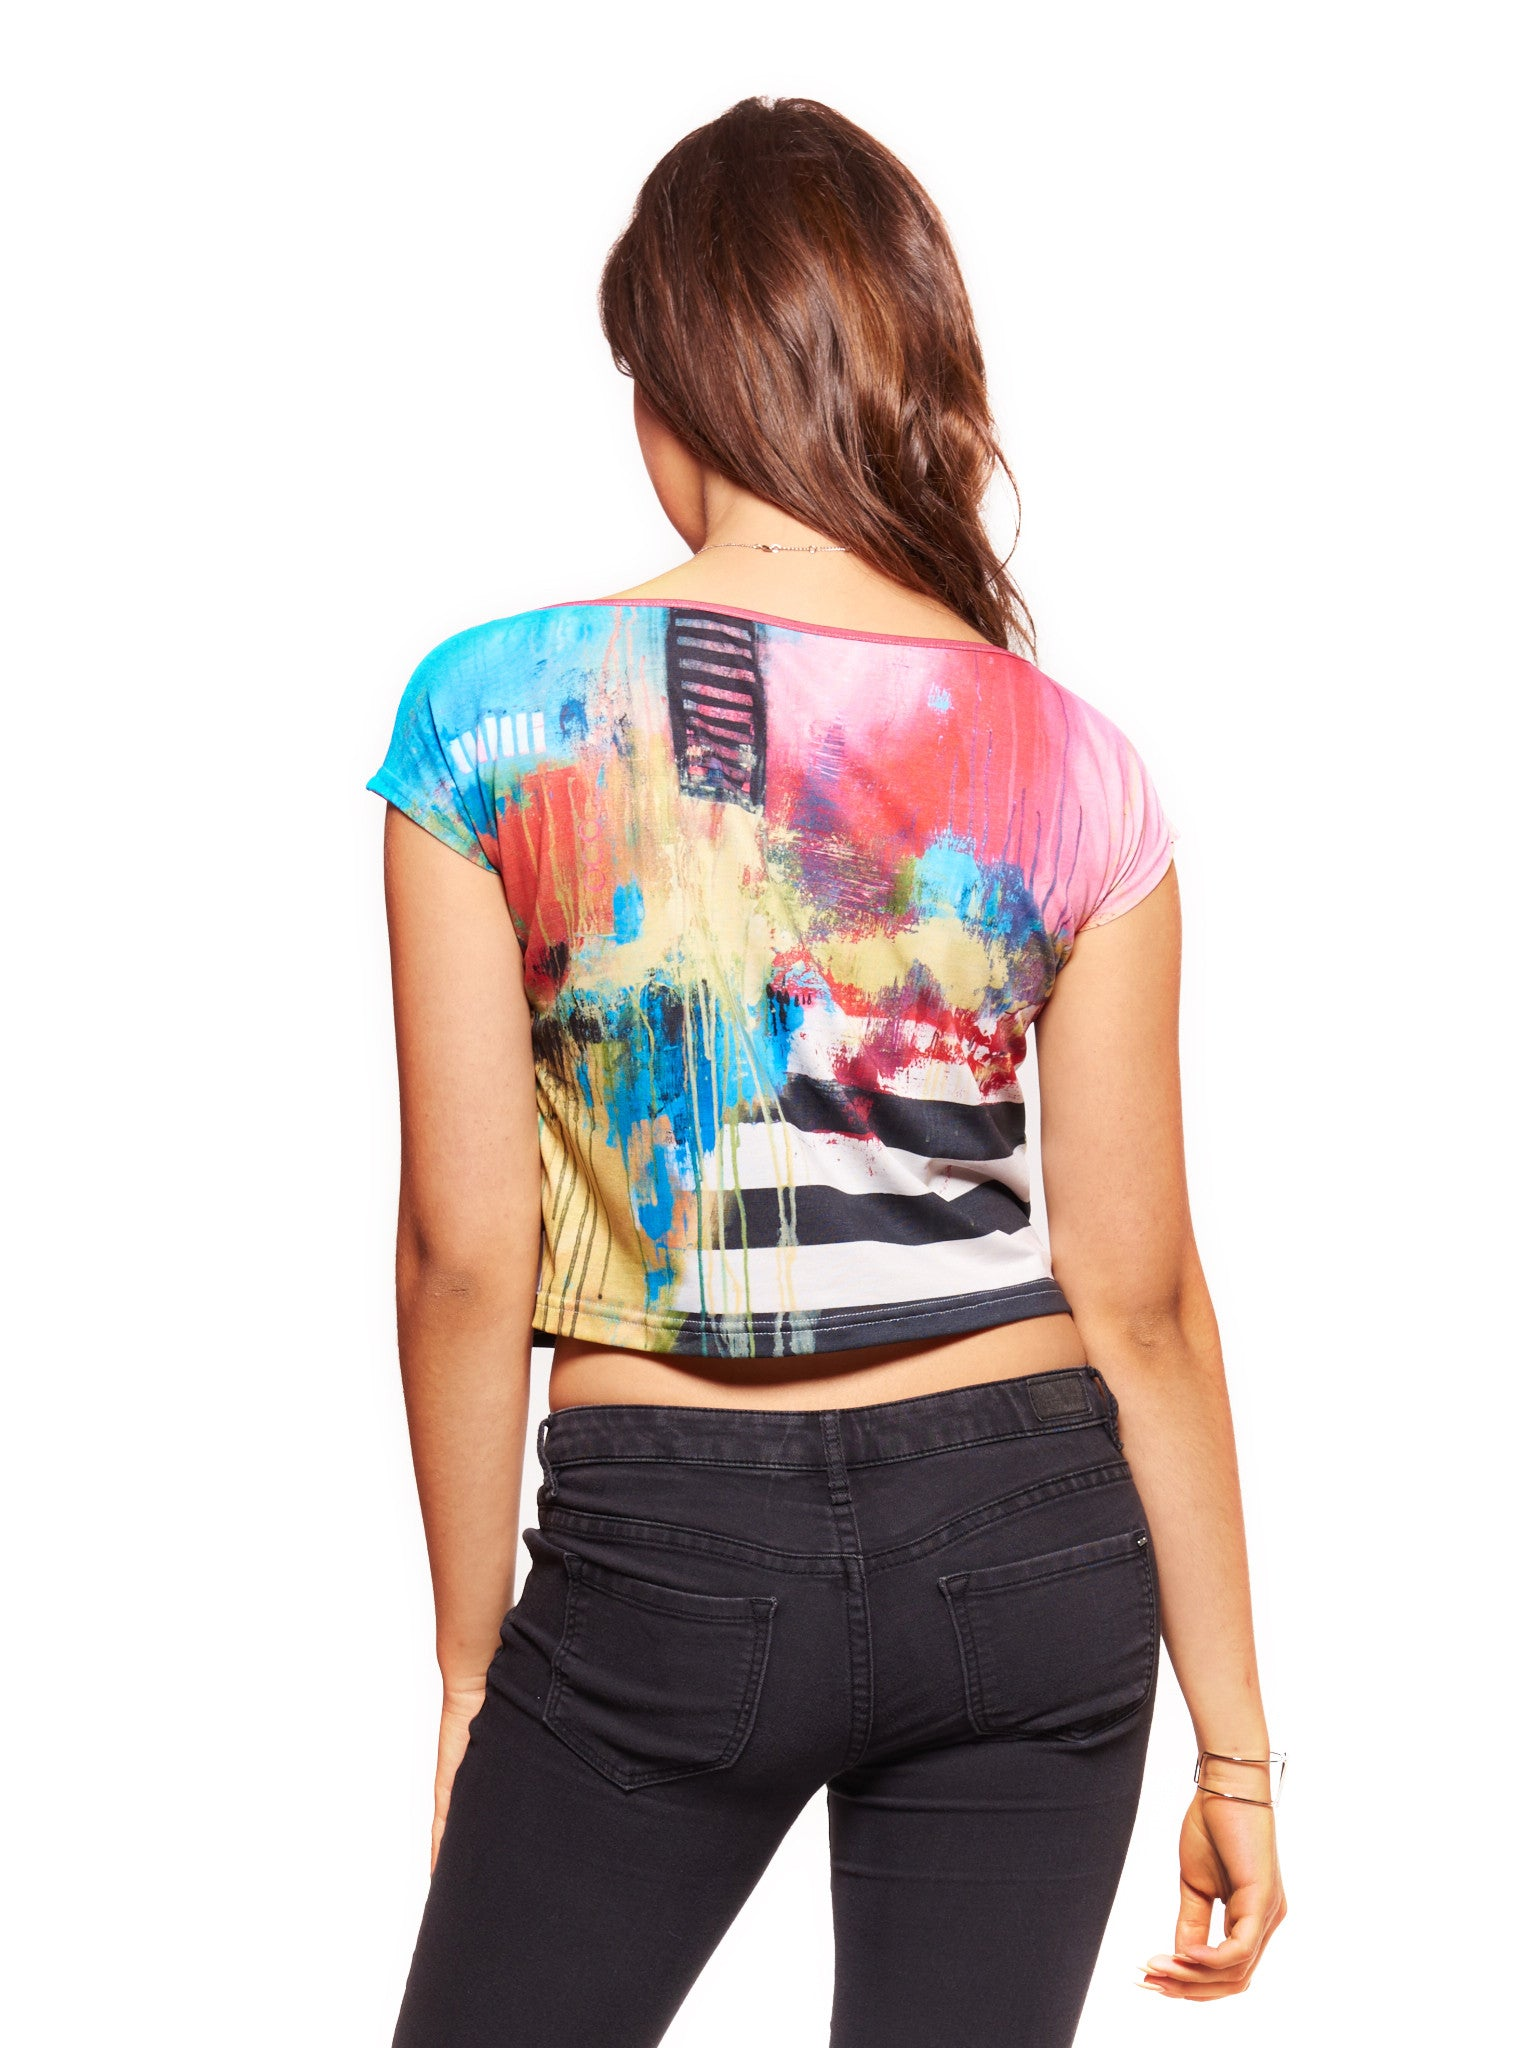 Say Something Women's Crop Top - Nuvango  - 2